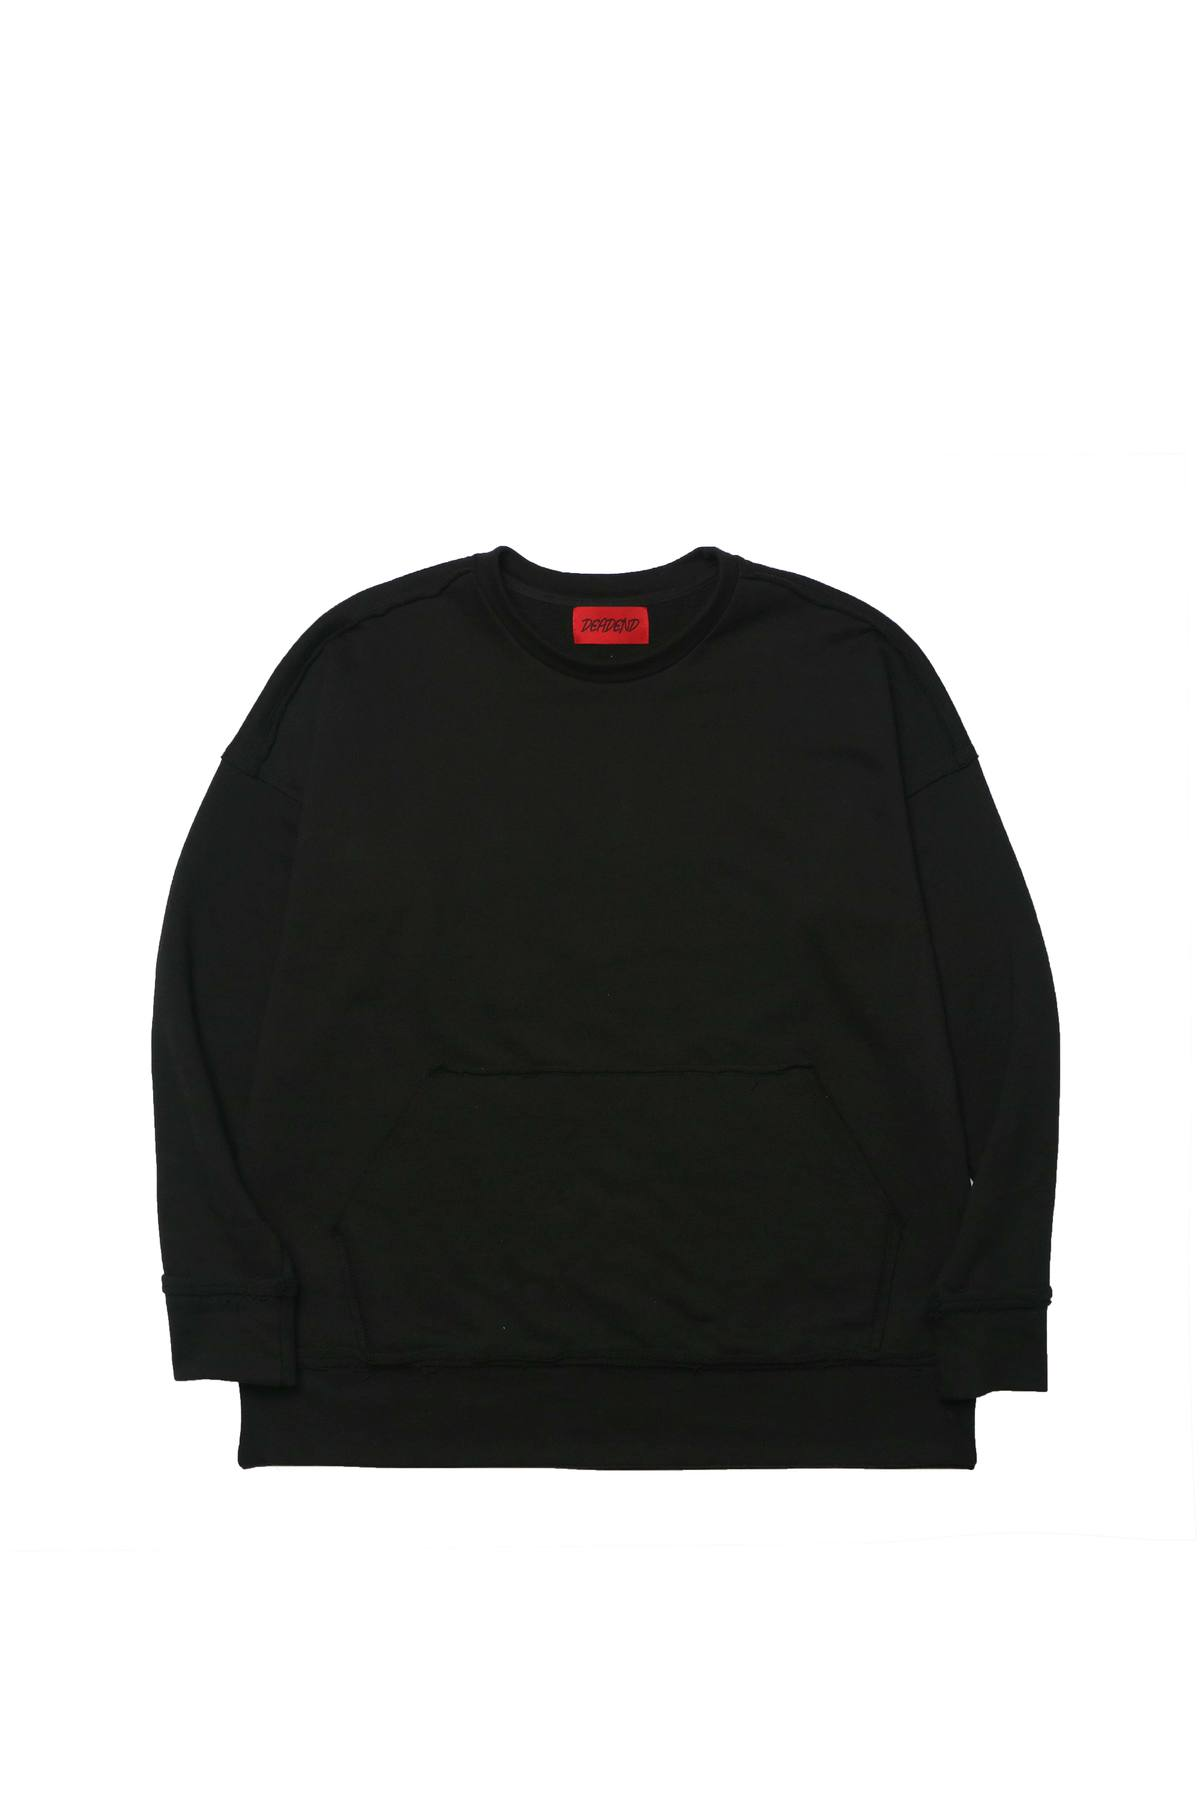 BLACK RAW EDGE SWEAT SHIRTS